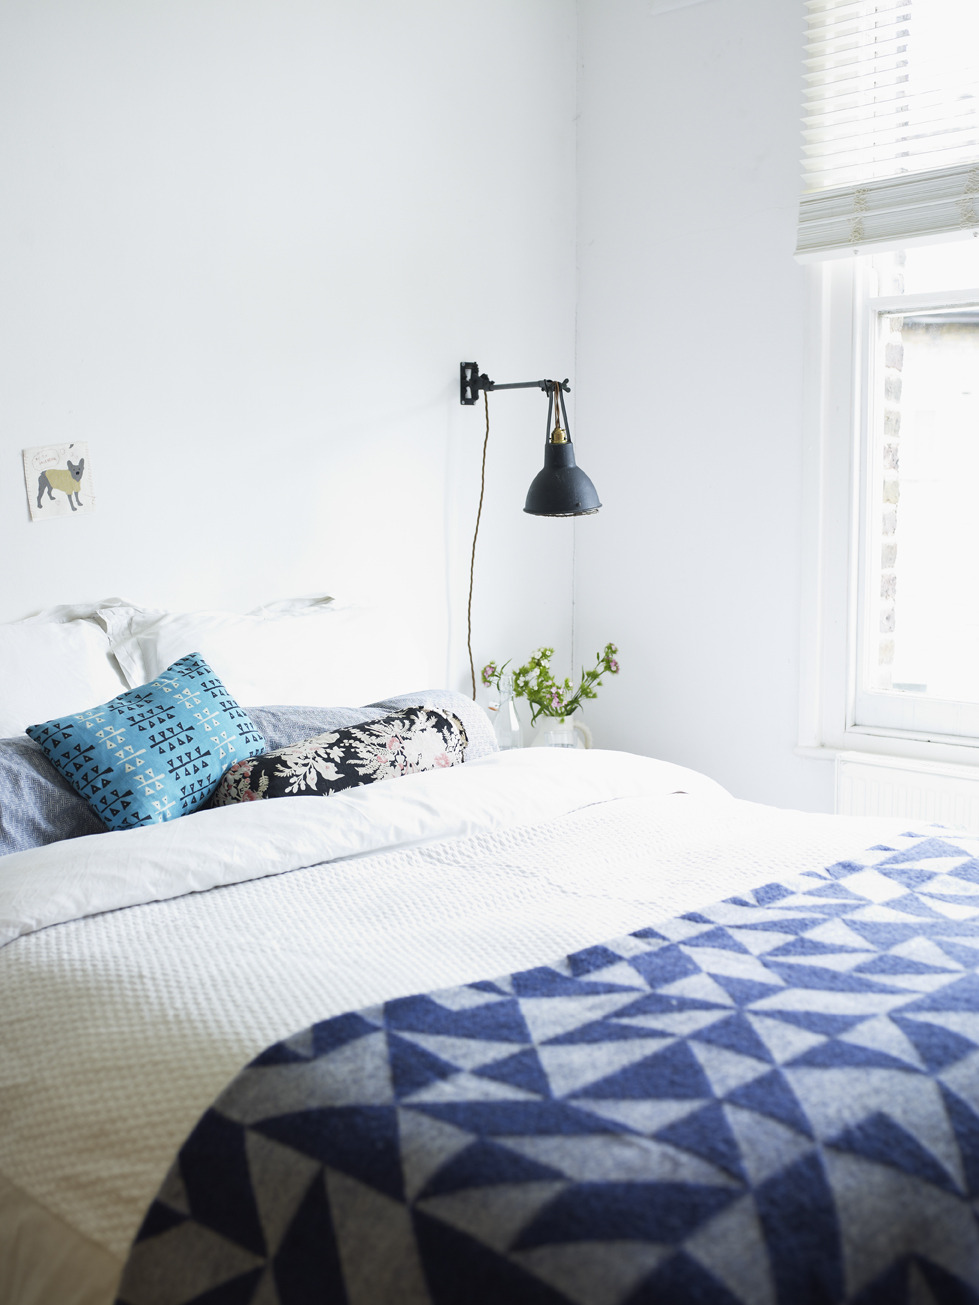 6 Useful Tips to Upgrade & De-clutter Your Bedroom Space